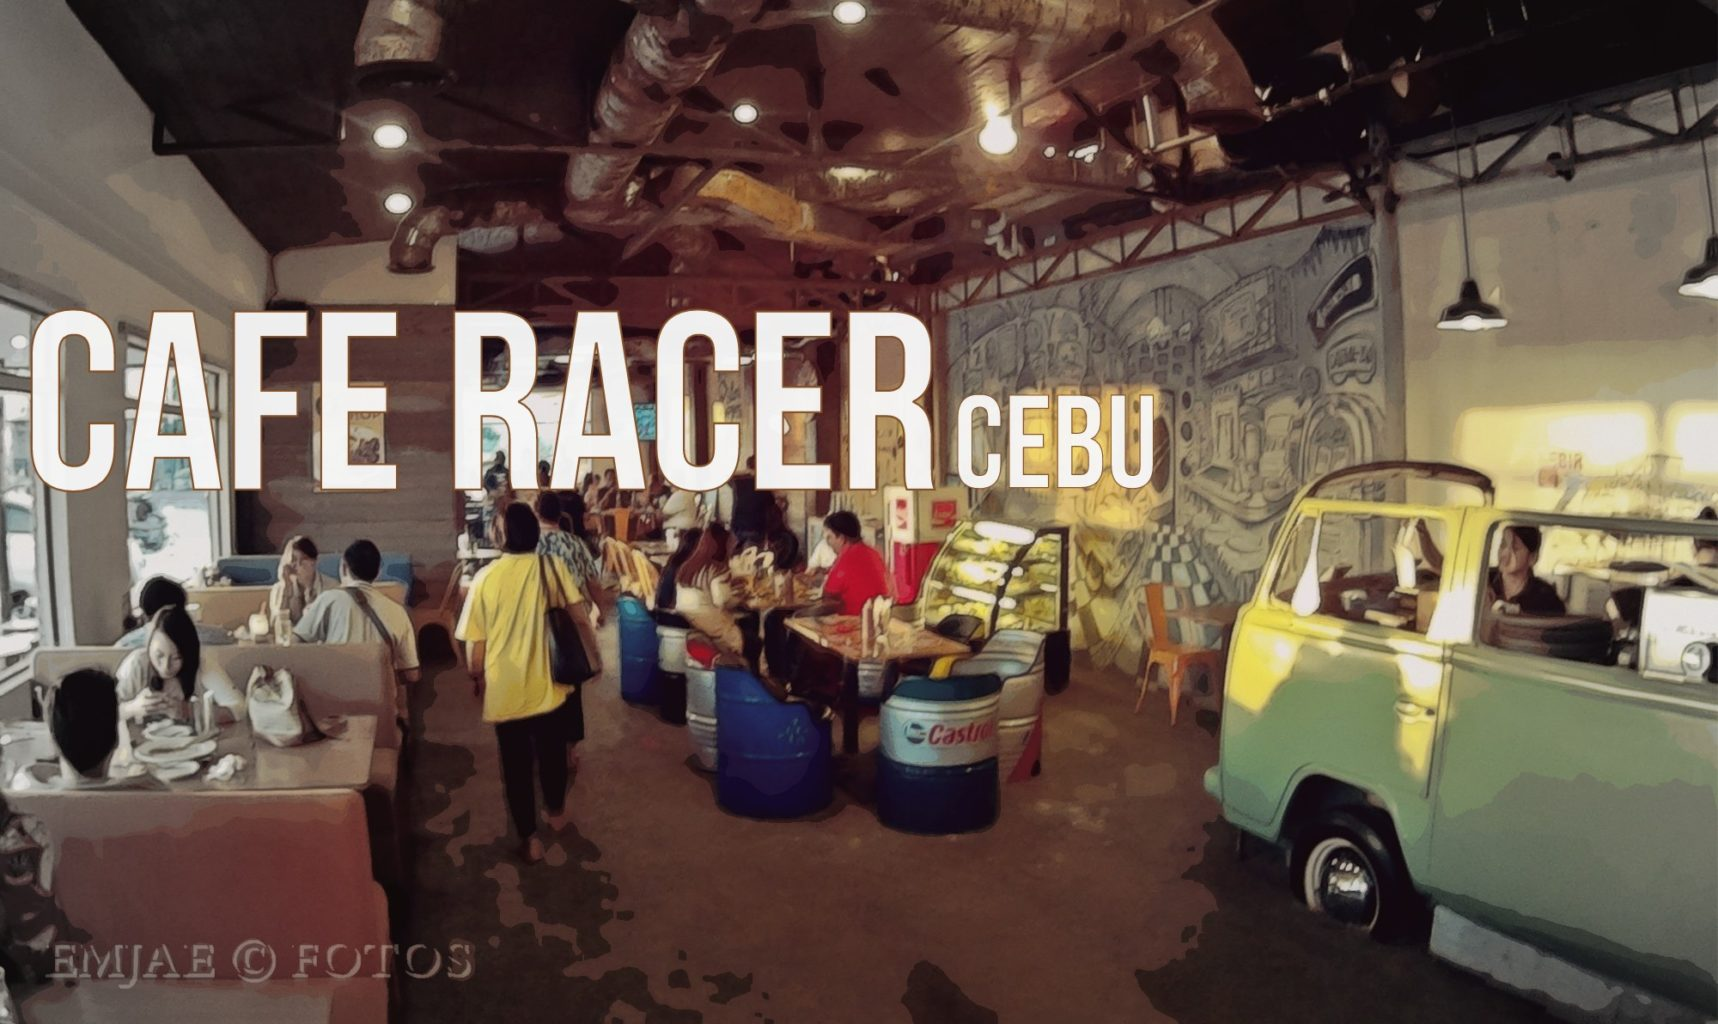 Cafe Racer Cebu: Where Dining Meets Vintage